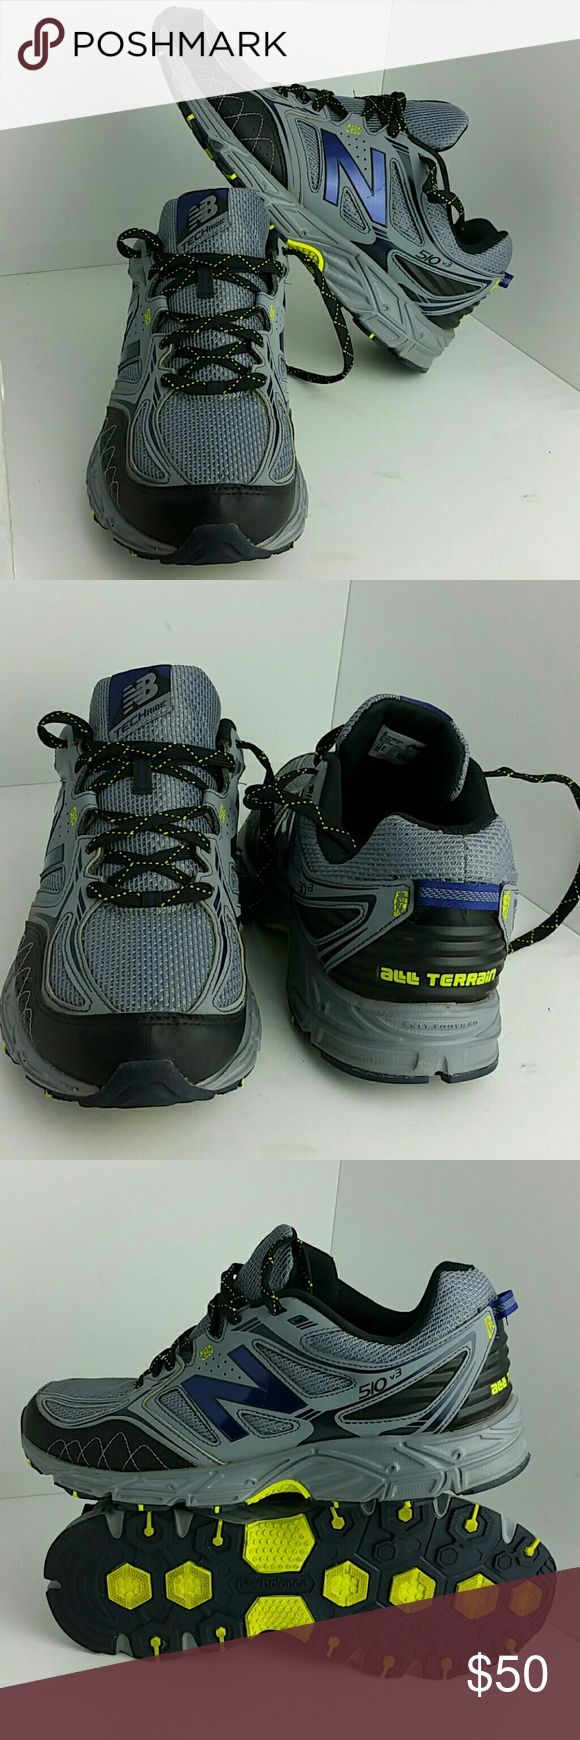 NEW BALANCE 510v3 ALL TERRAIN TECH RIDE VERY CLEAN INSIDE-OUT New Balance Shoes Athletic Shoes